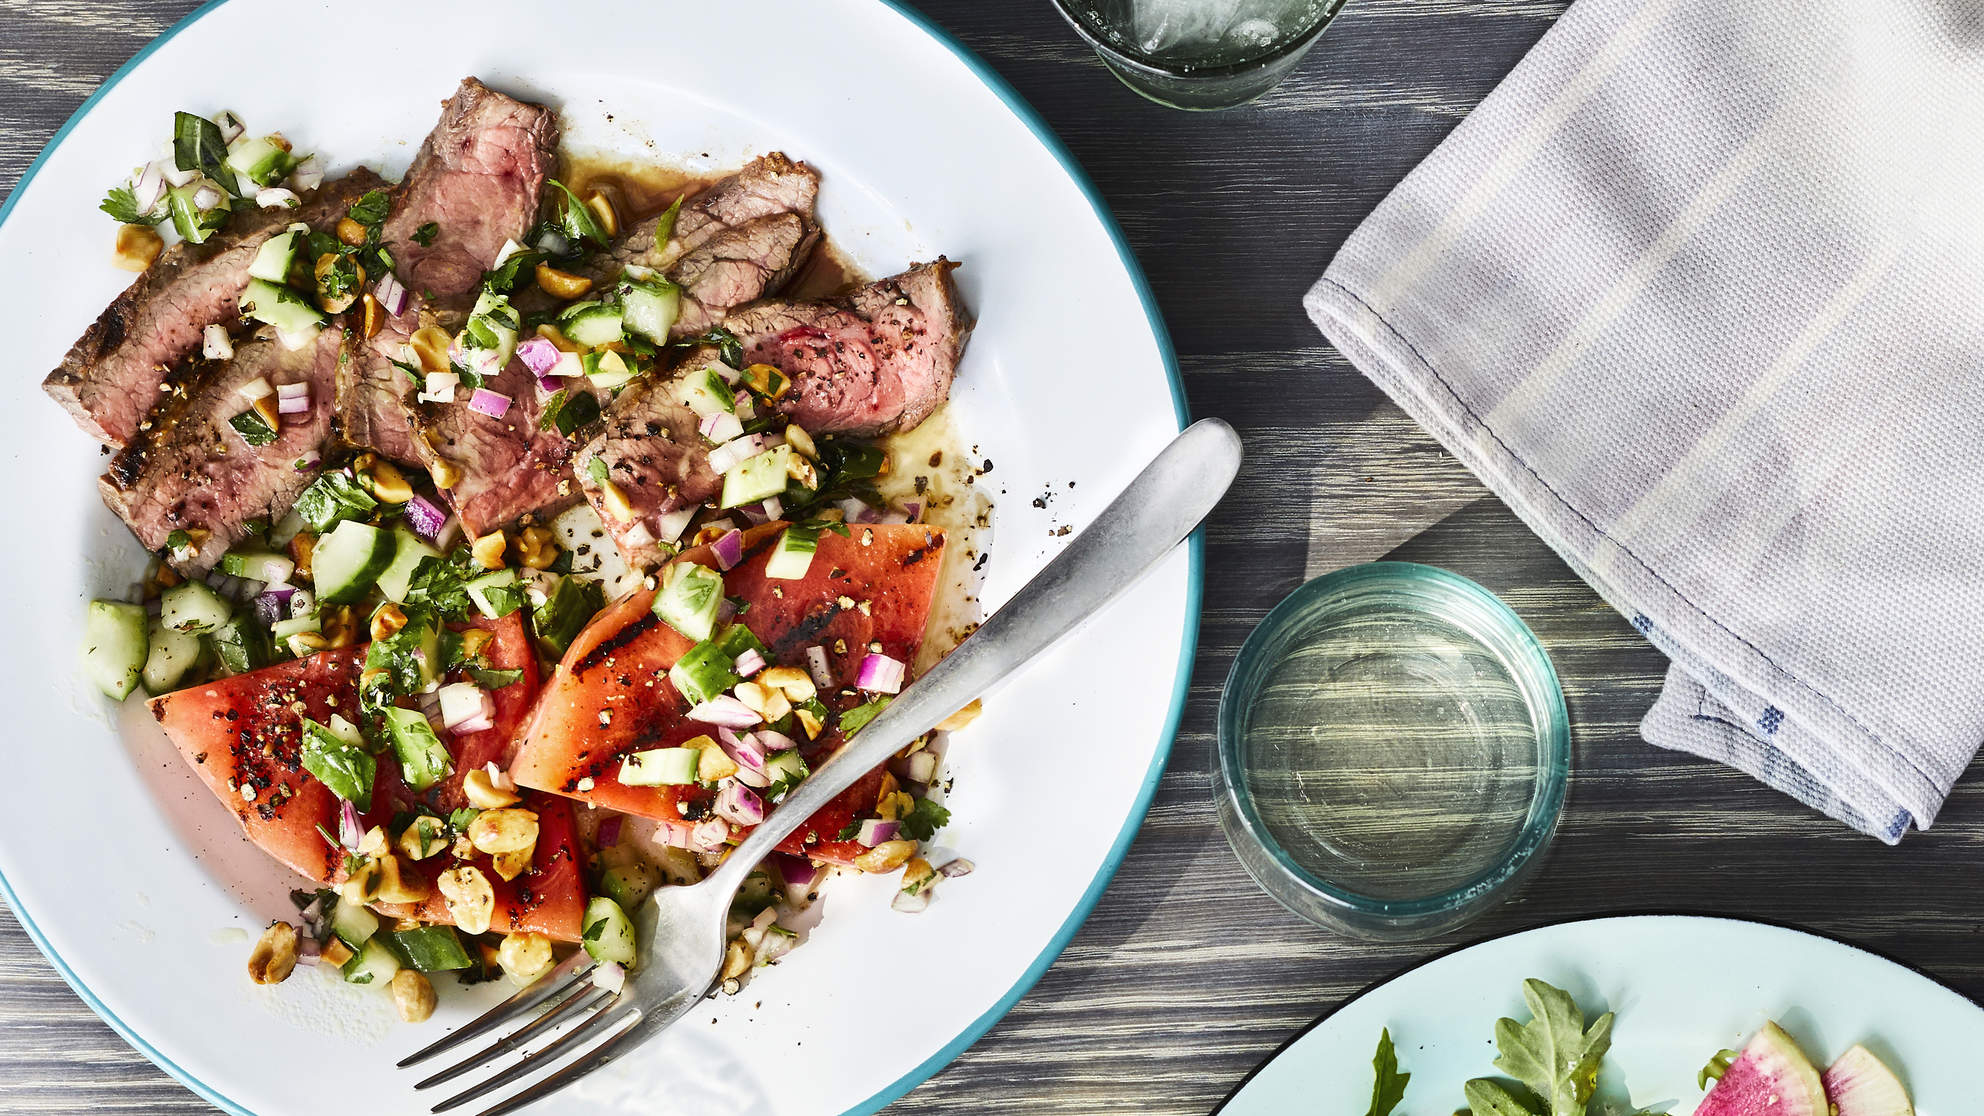 Grilled Flank Steak And Watermelon Salad